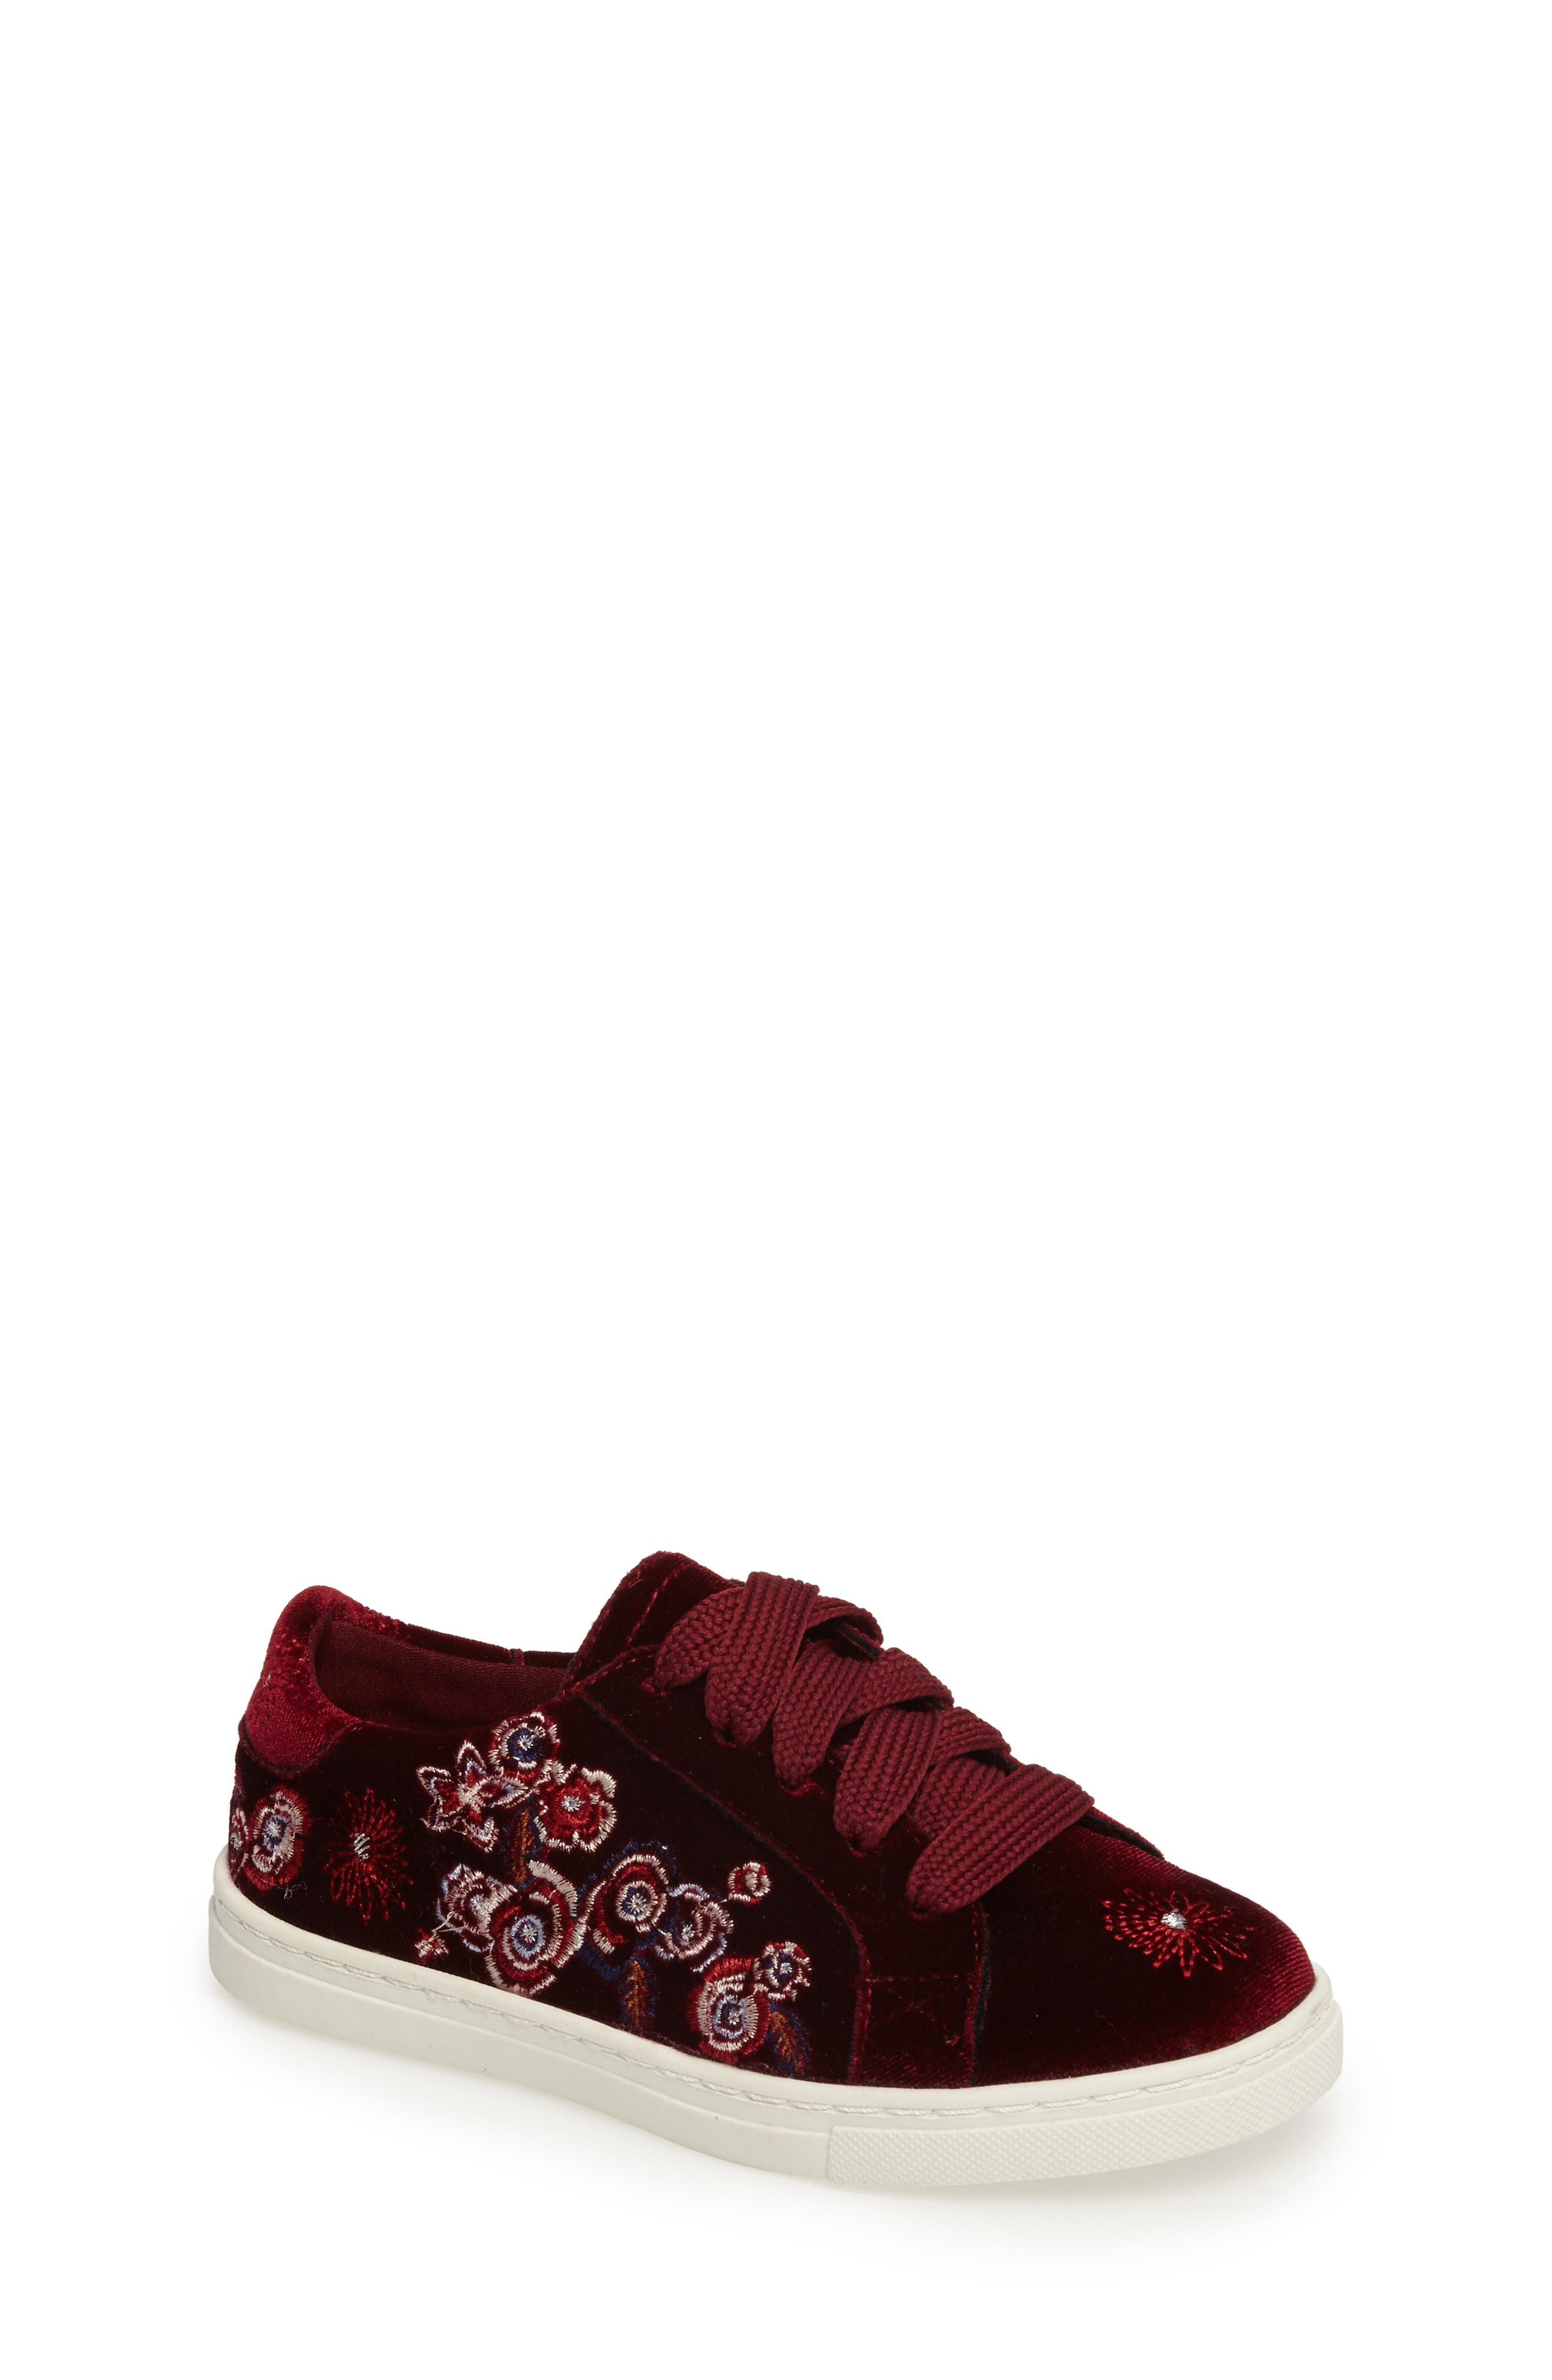 Zolly Floral Embroidered Sneaker,                         Main,                         color, 602